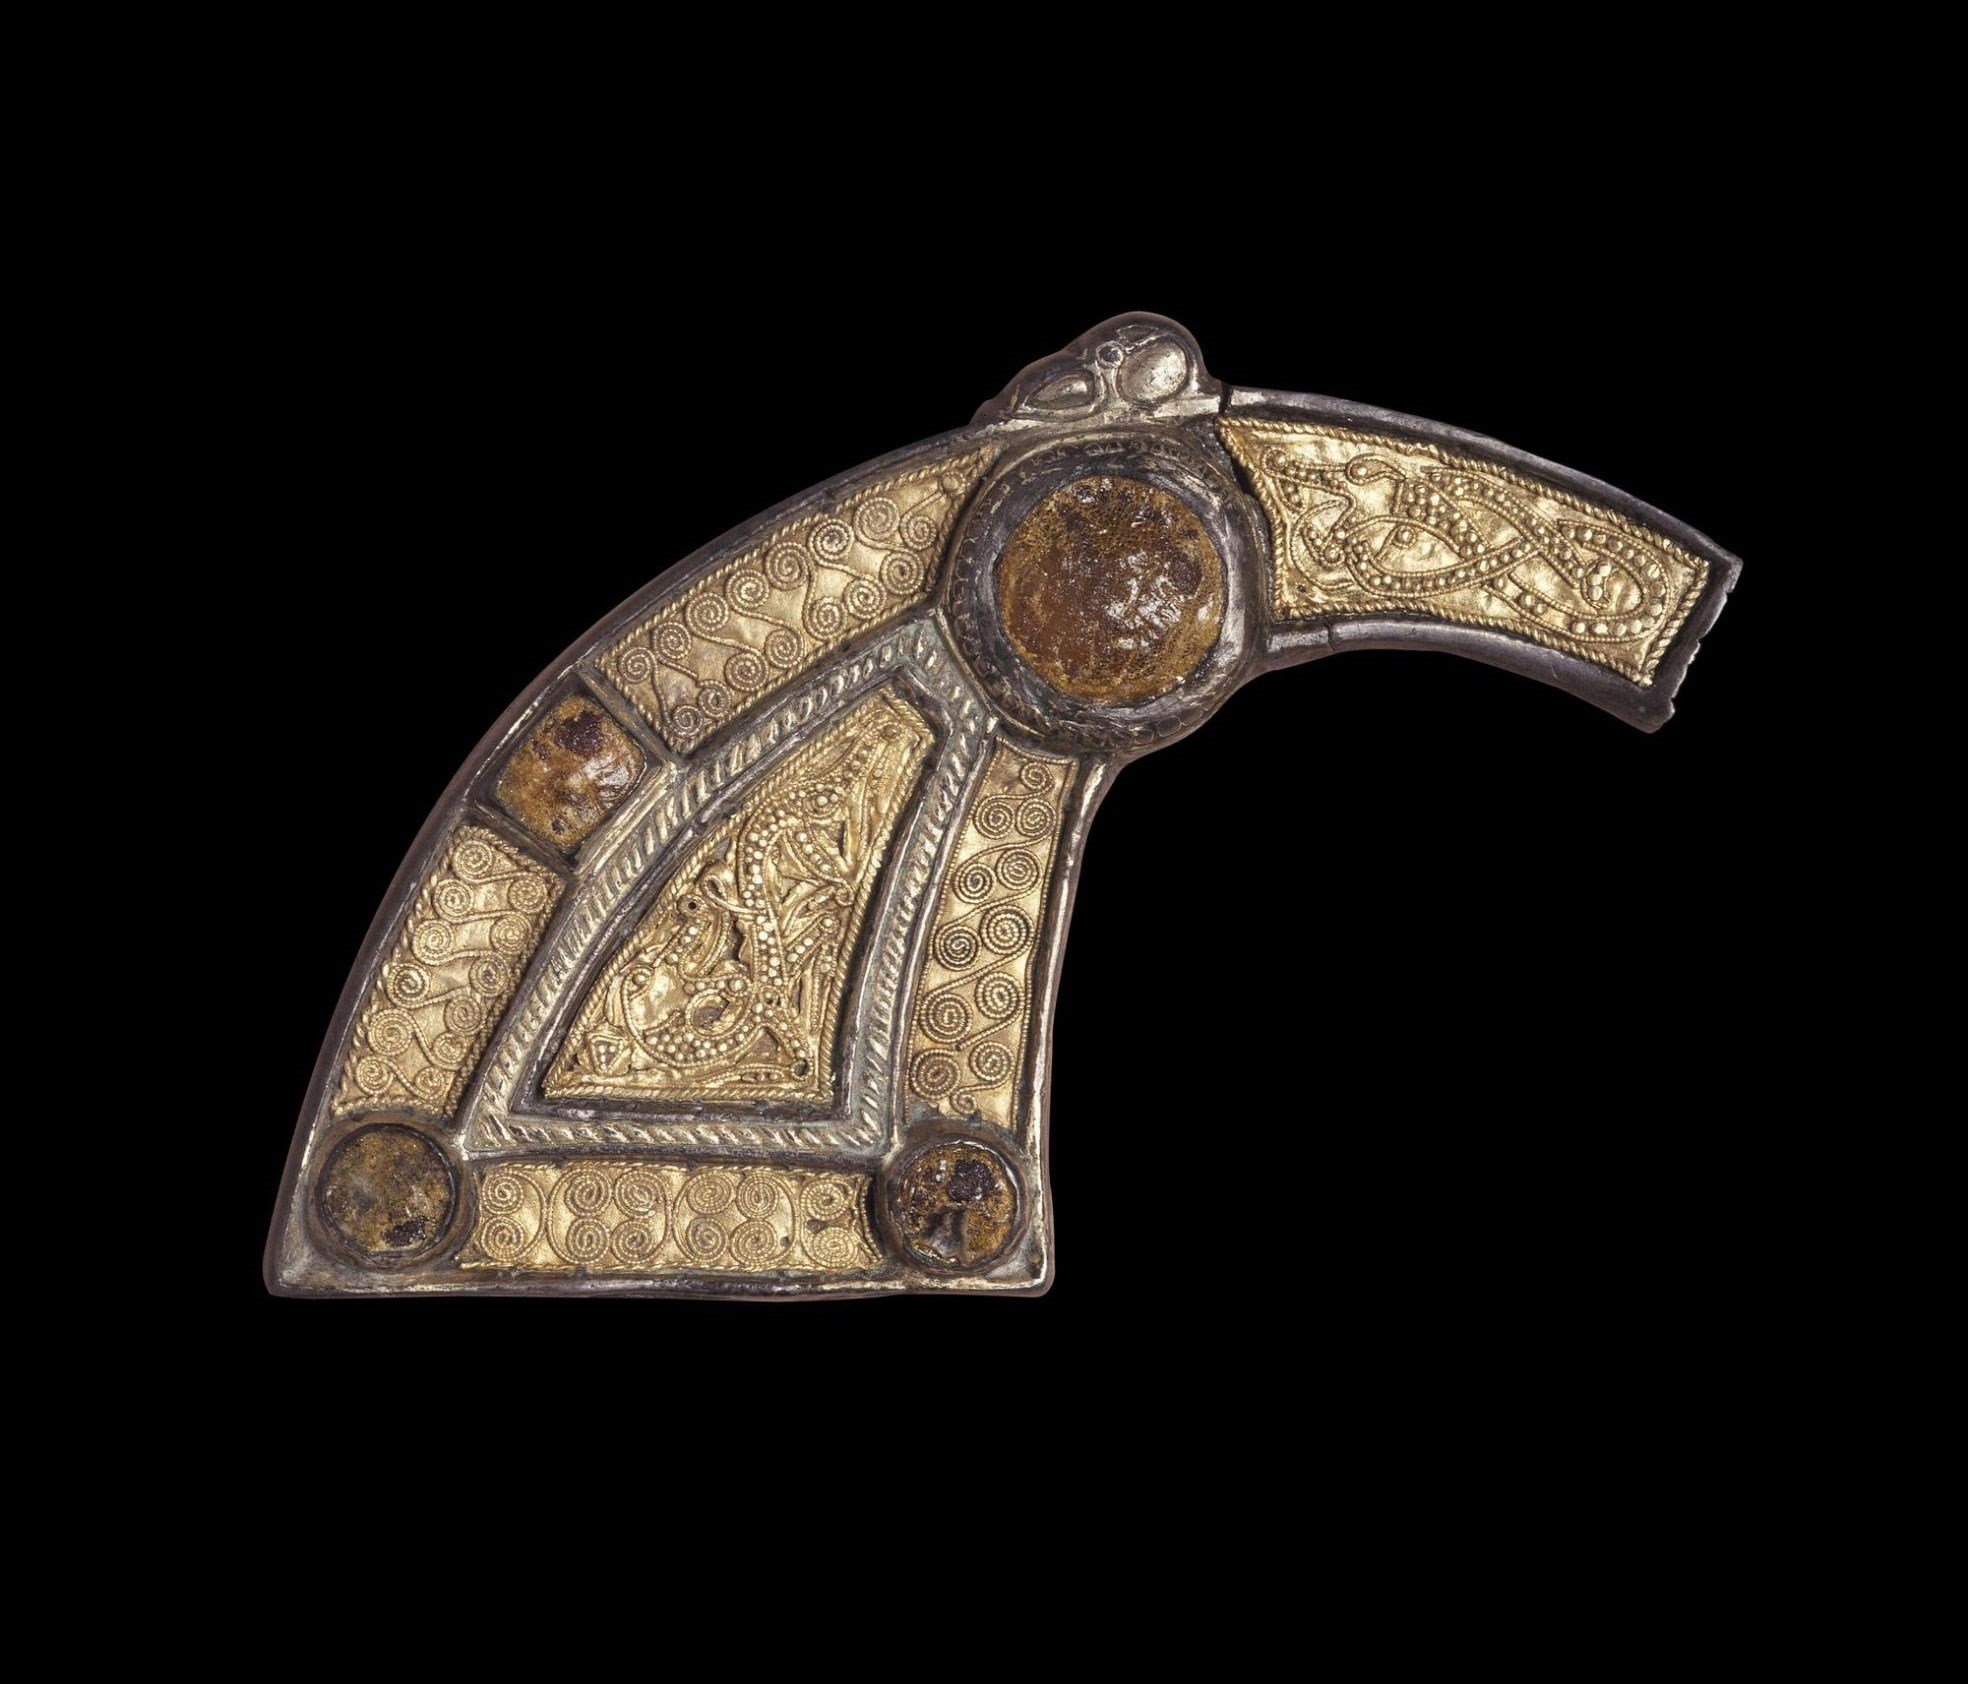 Portion of a silver pennanular brooch, ornamented with gold filigree and amber settings, from Dunbeath, Caithness, AD 650–750.